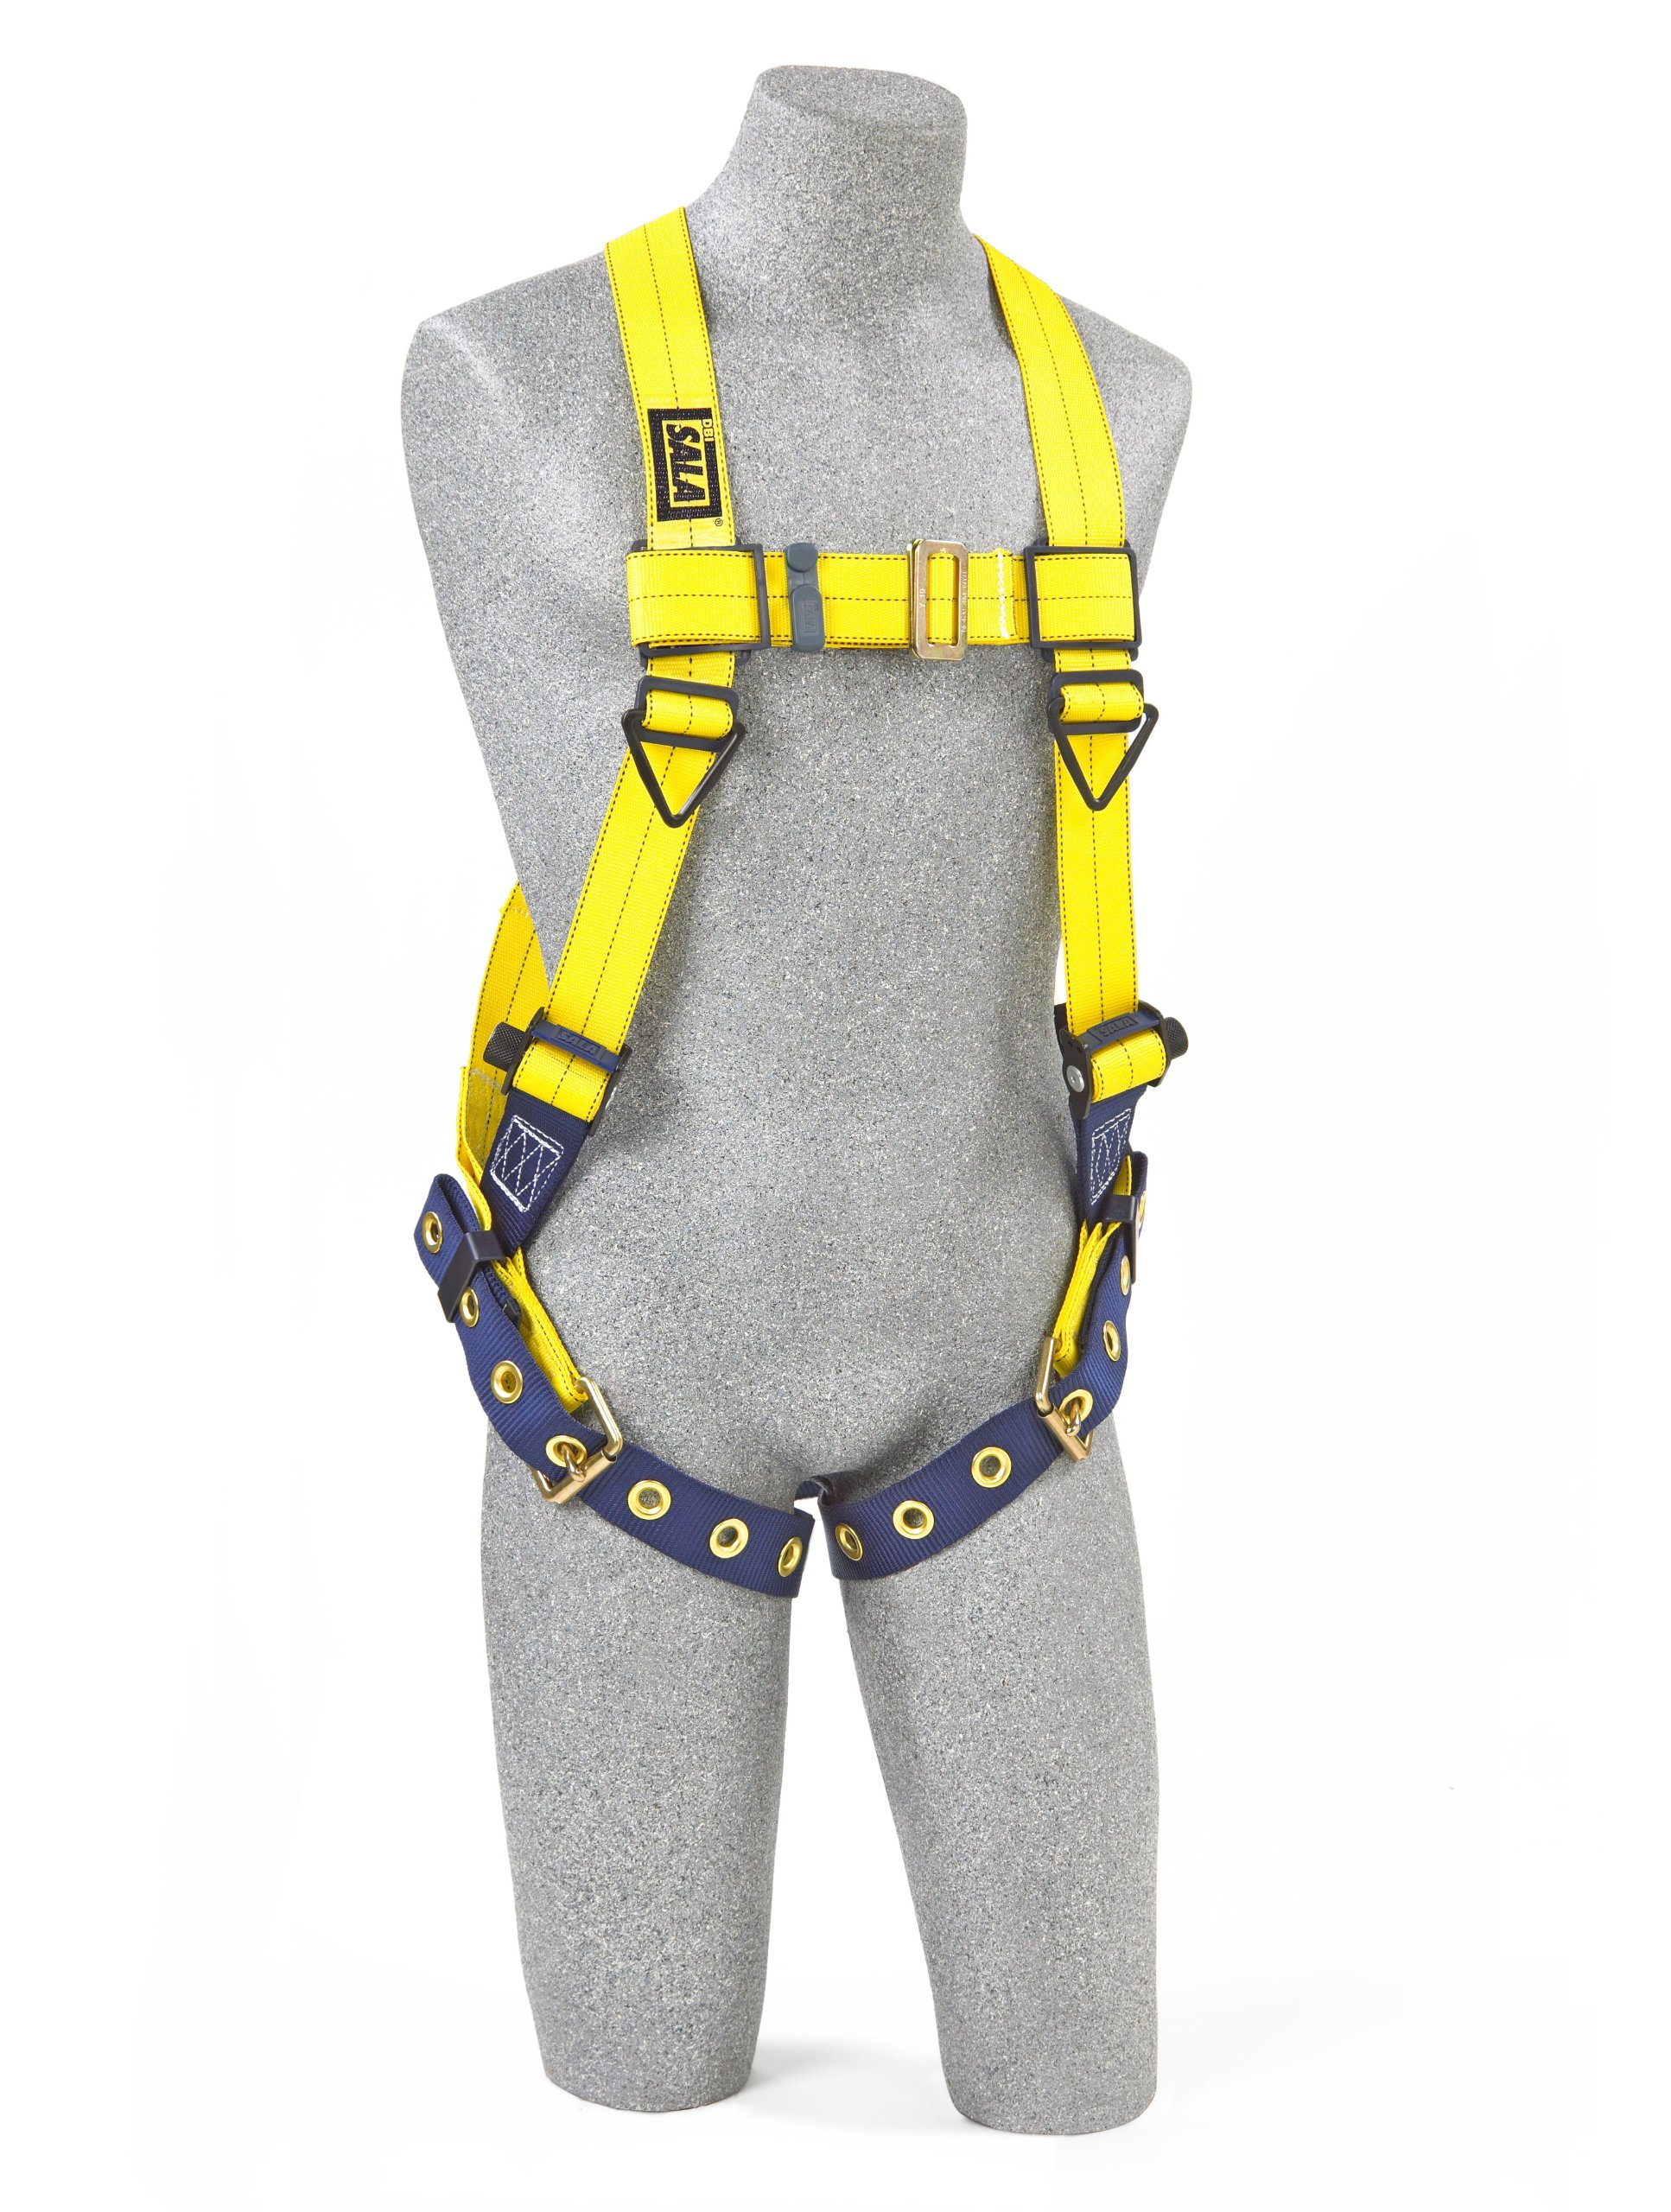 3M DBI-SALA Delta 1102000 Vest Style Harness, Back D-Ring, Tongue Buckle Leg Straps, Universal, Navy/Yellow by 3M Personal Protective Equipment